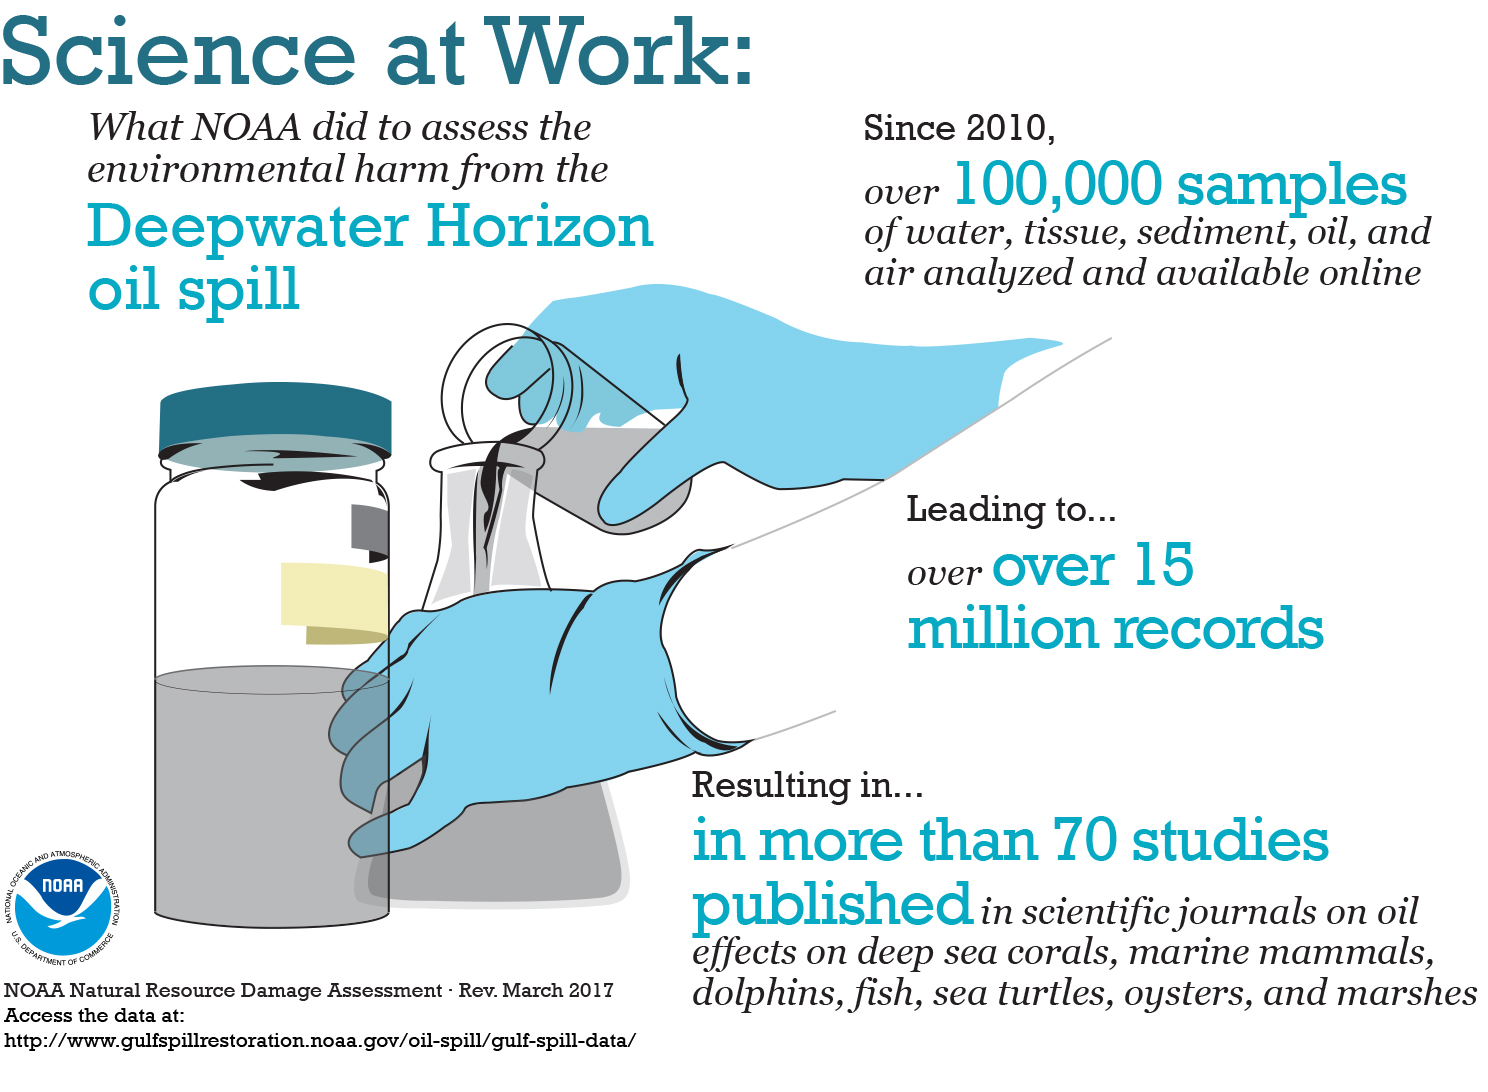 Graphic showing 100K samples; 15 million records; 70 scientific studies since DWH